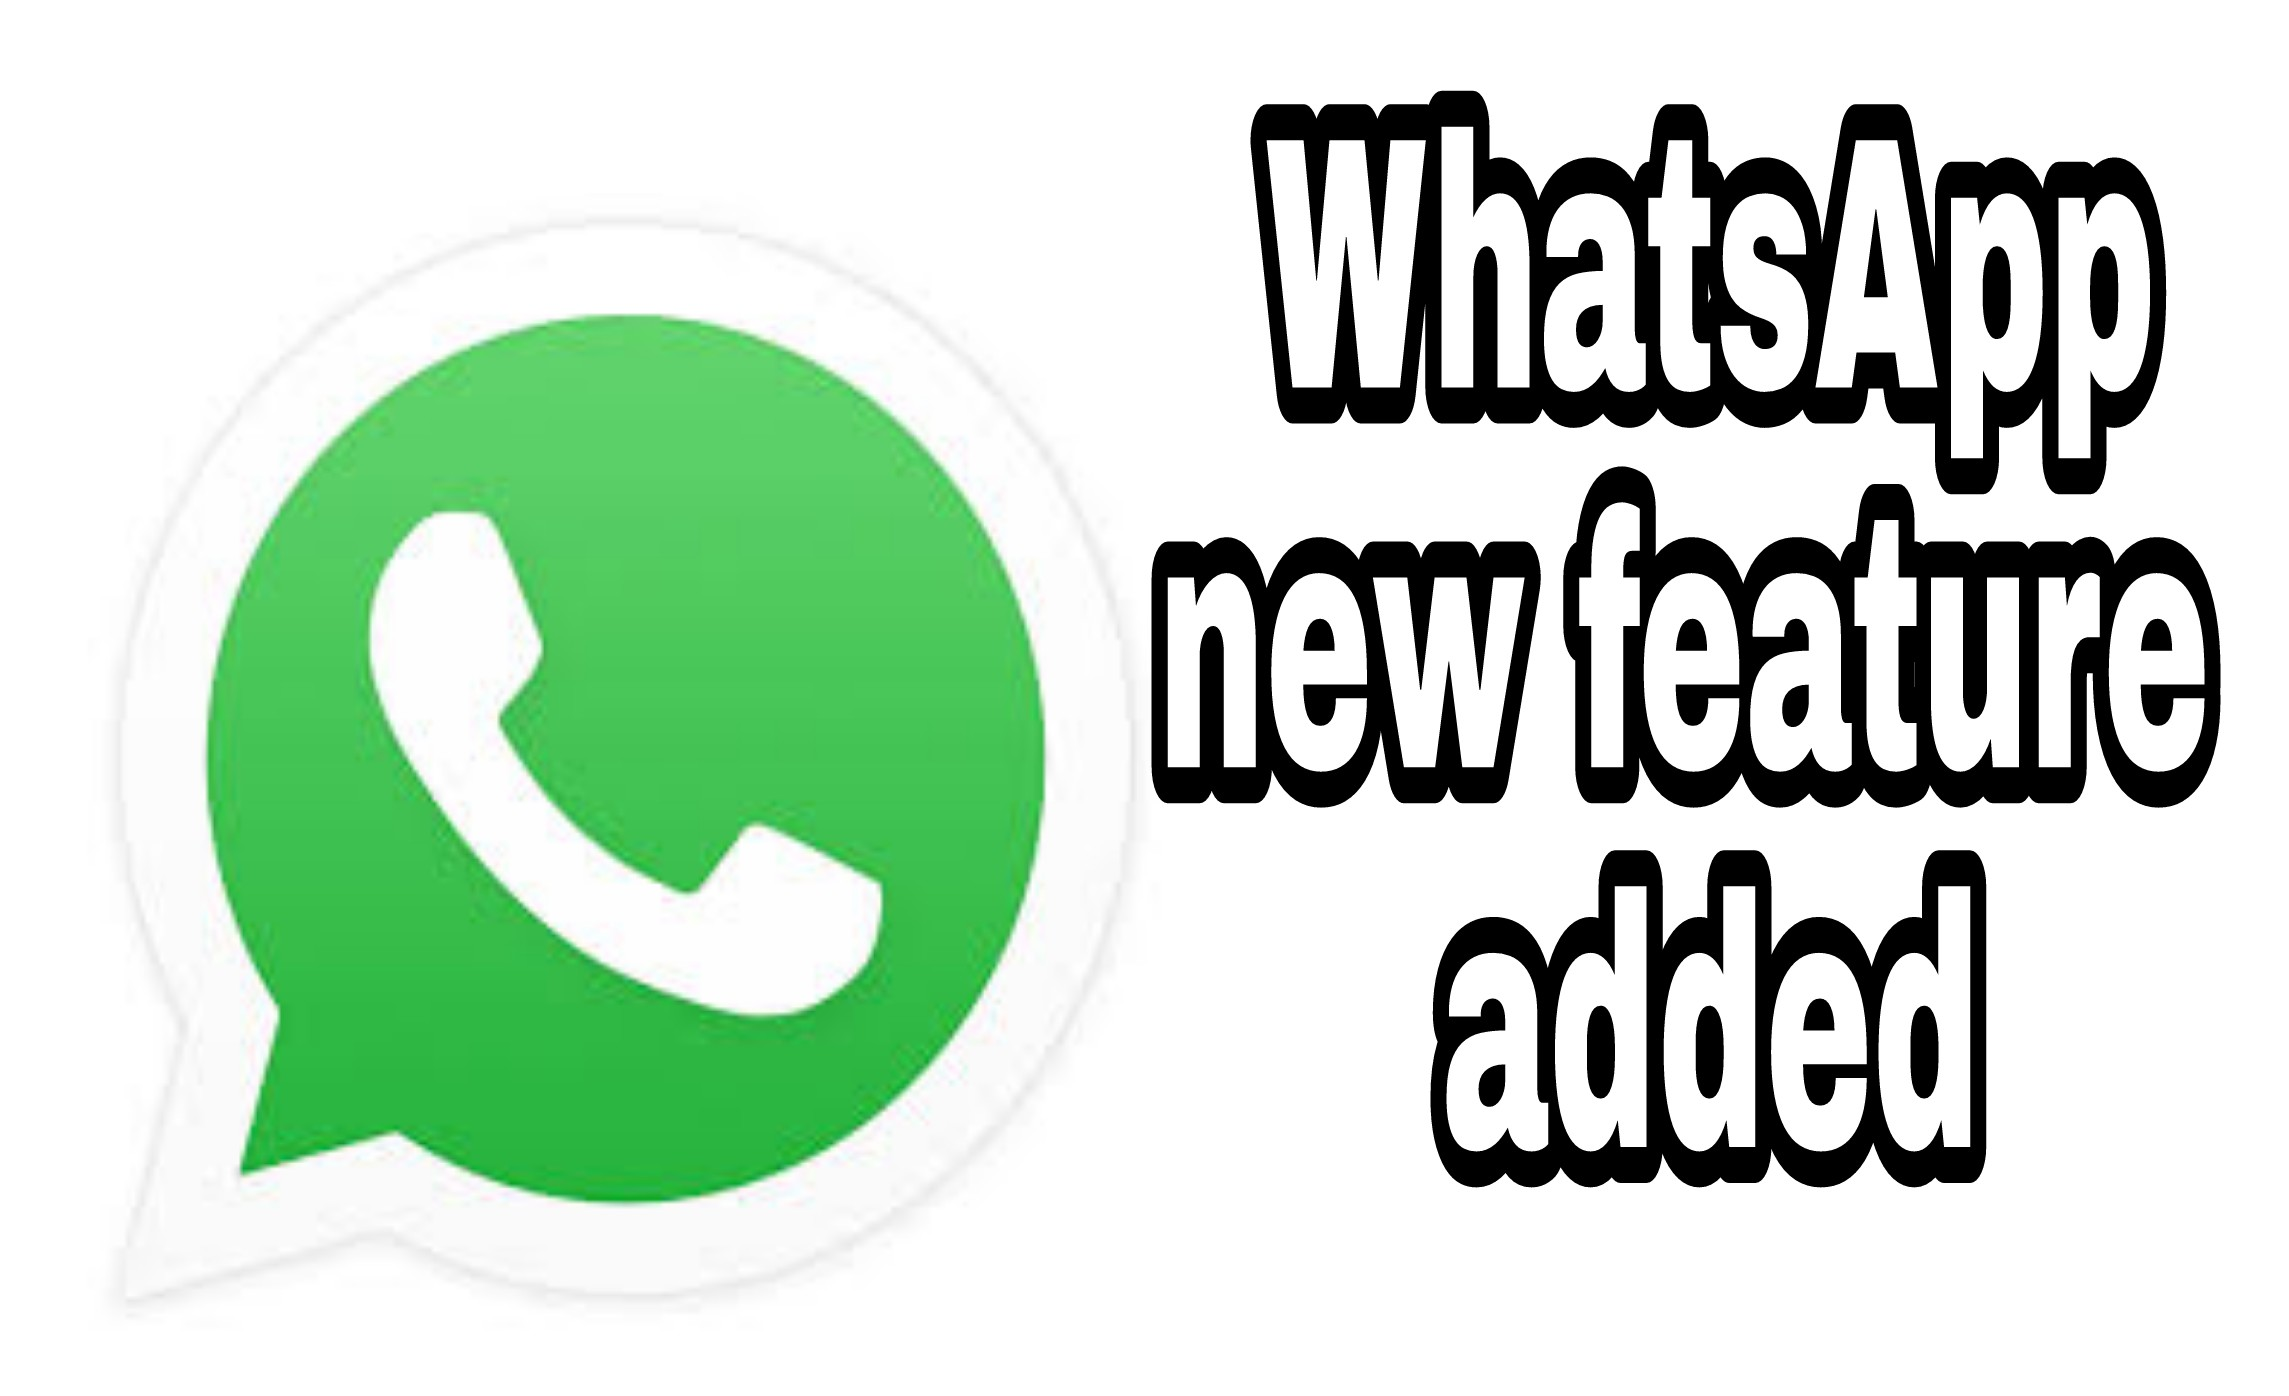 Whatsapp has removed one feature  and add a new feature